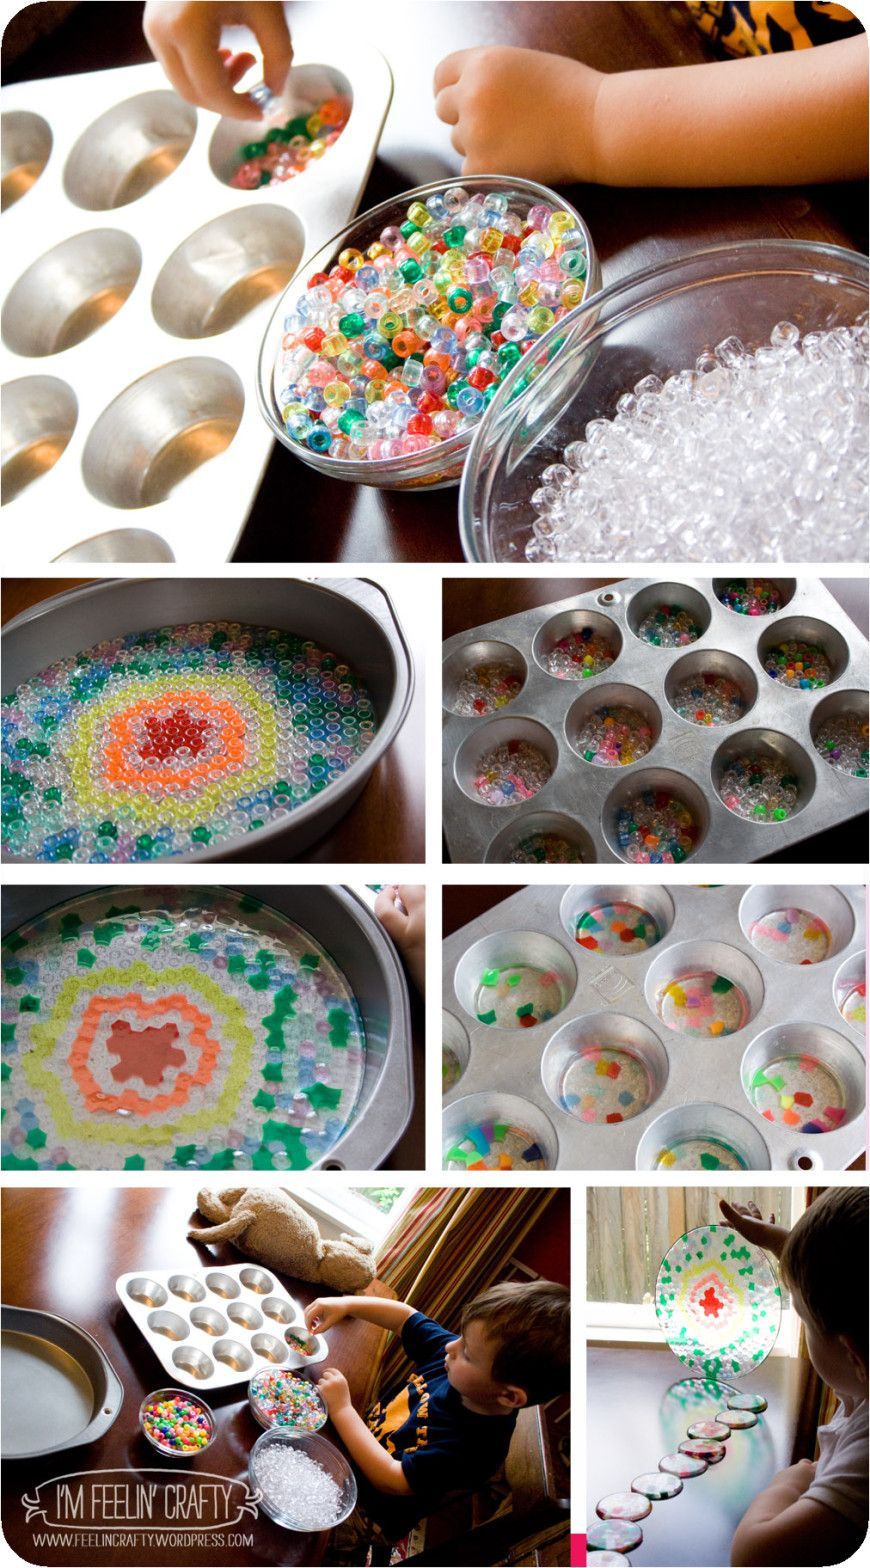 Making Melted Bead Sun Catchers-I'm Feelin' Crafty